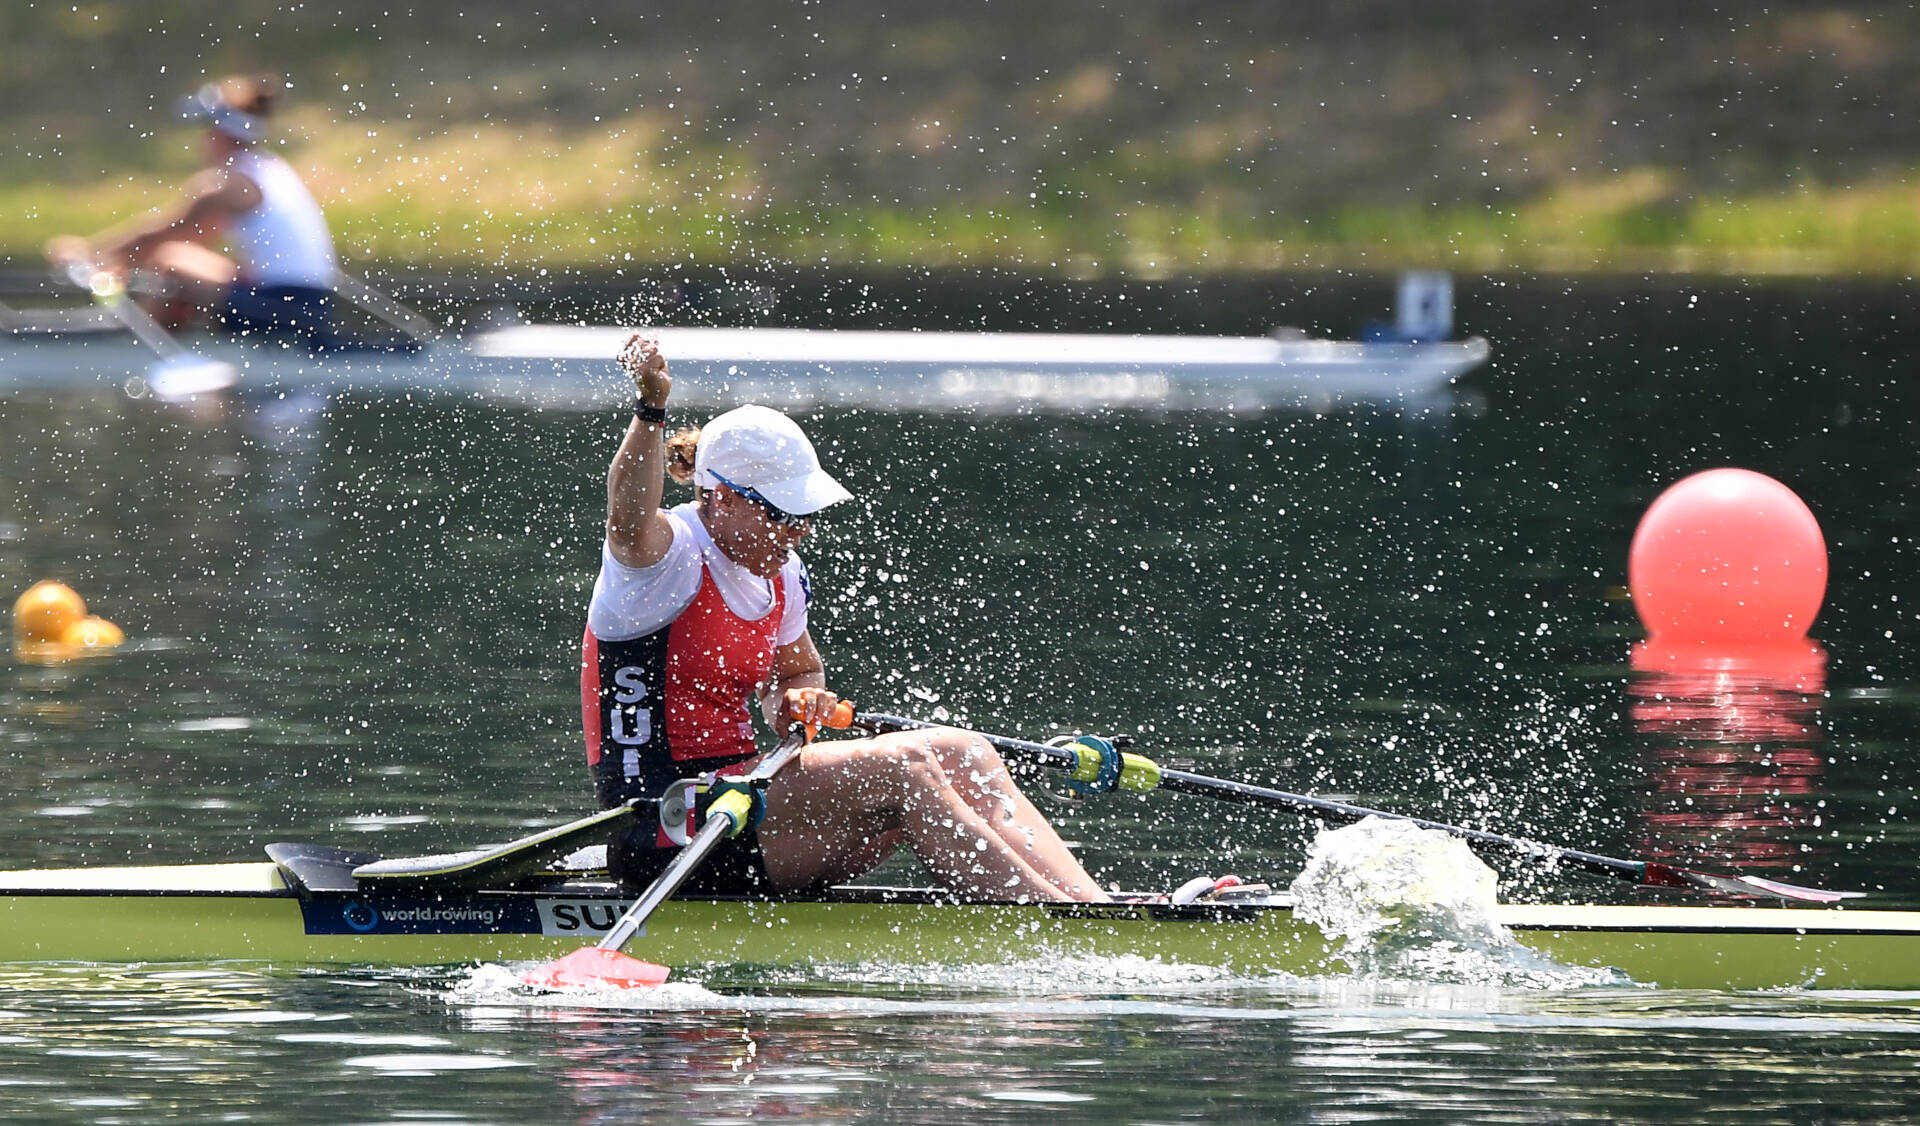 World Rowing Cup I W1x Gold SUI